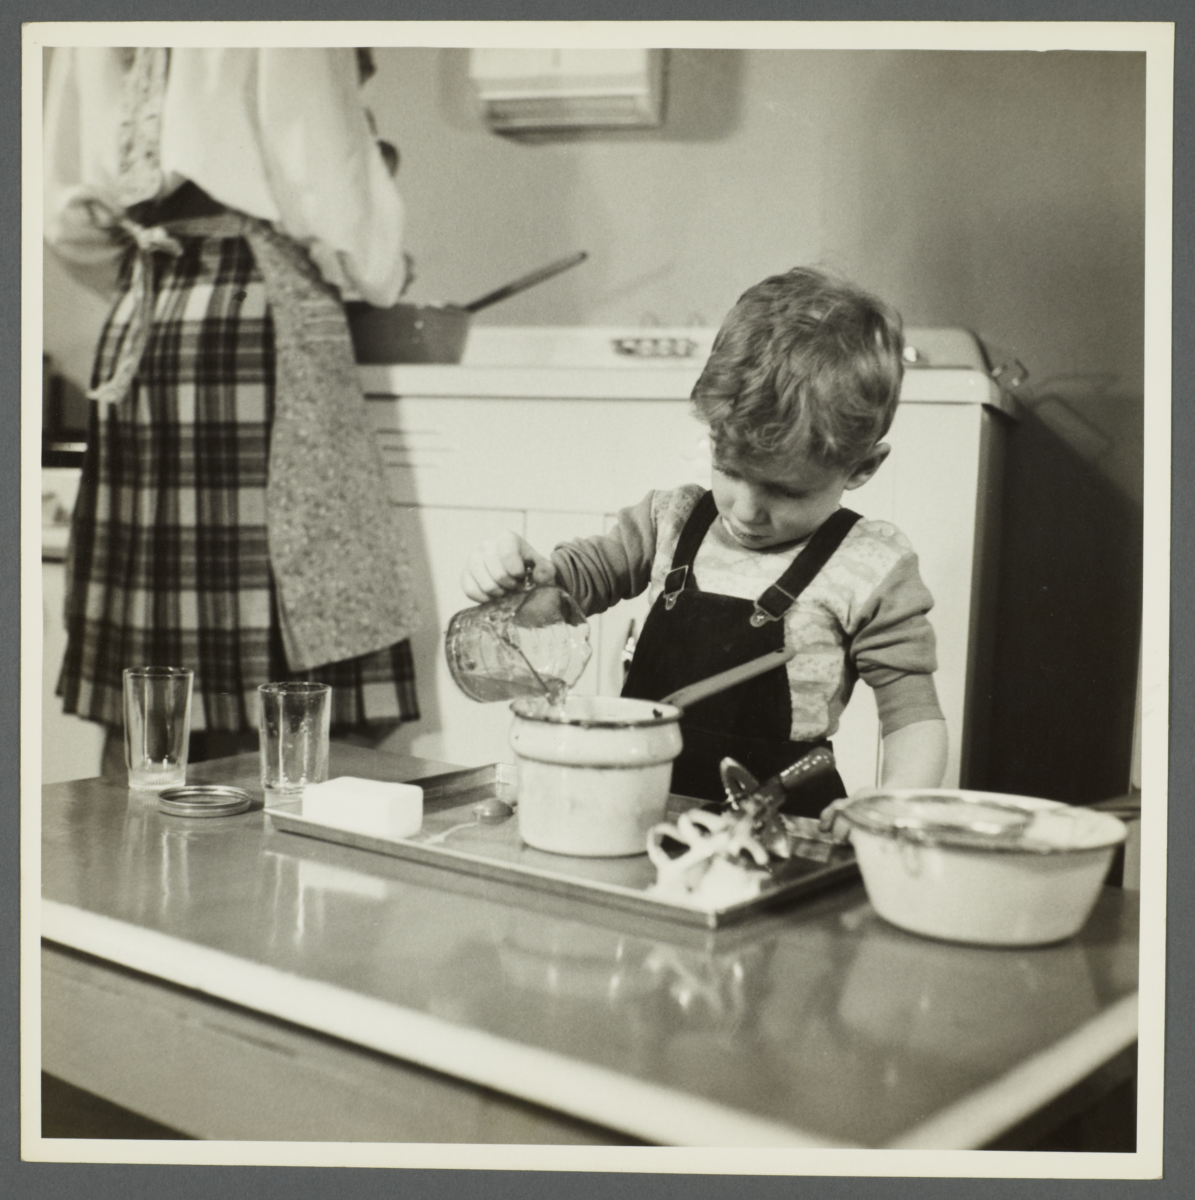 Lenox Hill, 1948-1949 Album -- Boy Mixing Ingredients